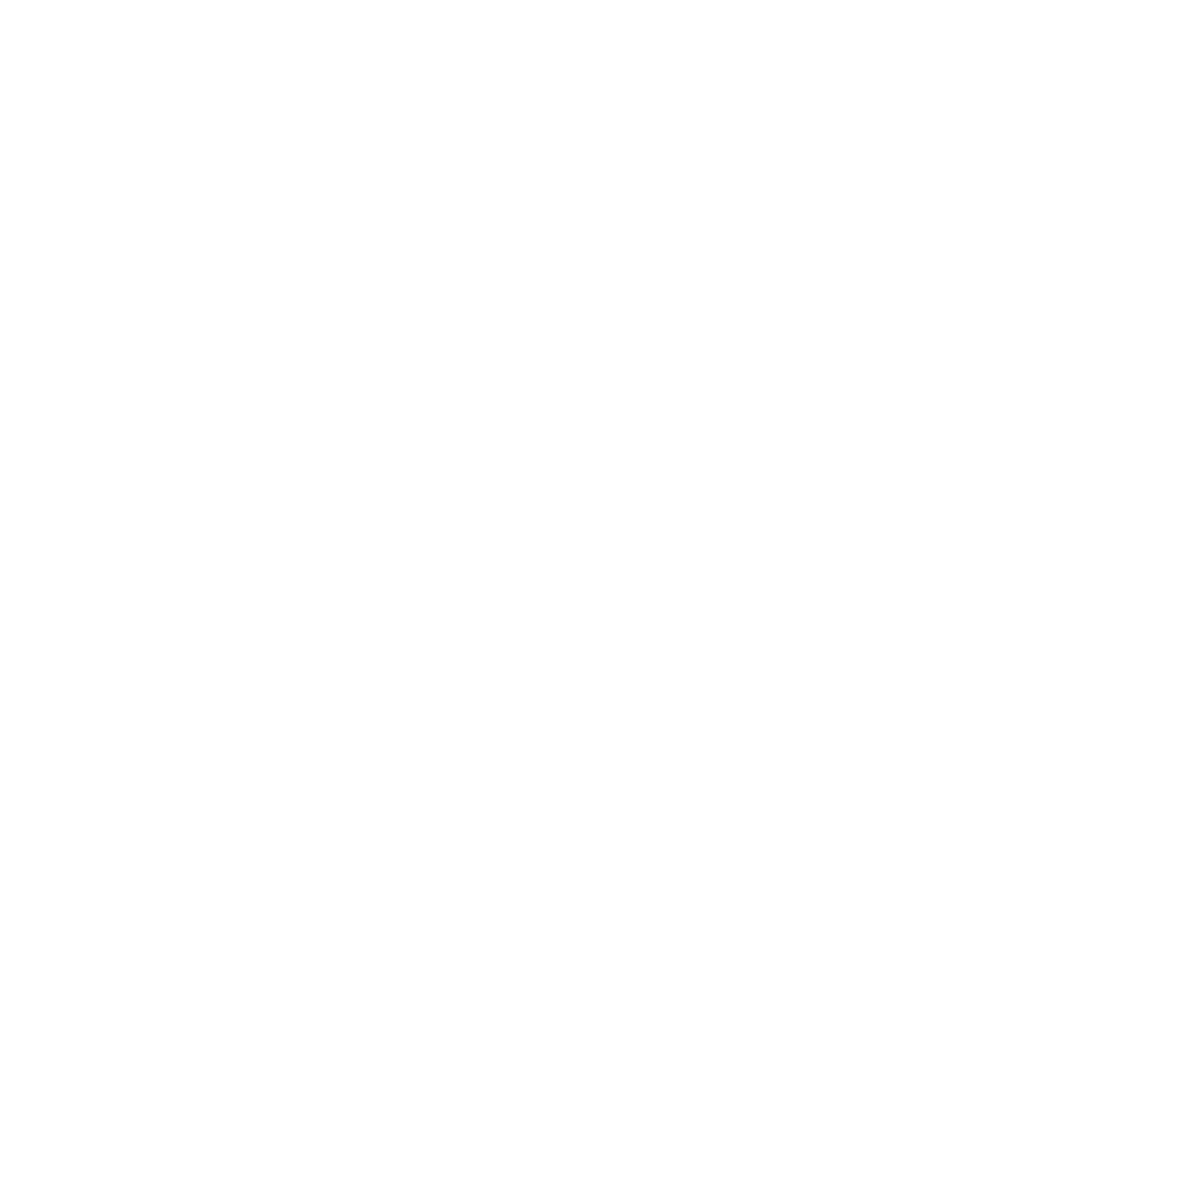 Wanstead Business Network